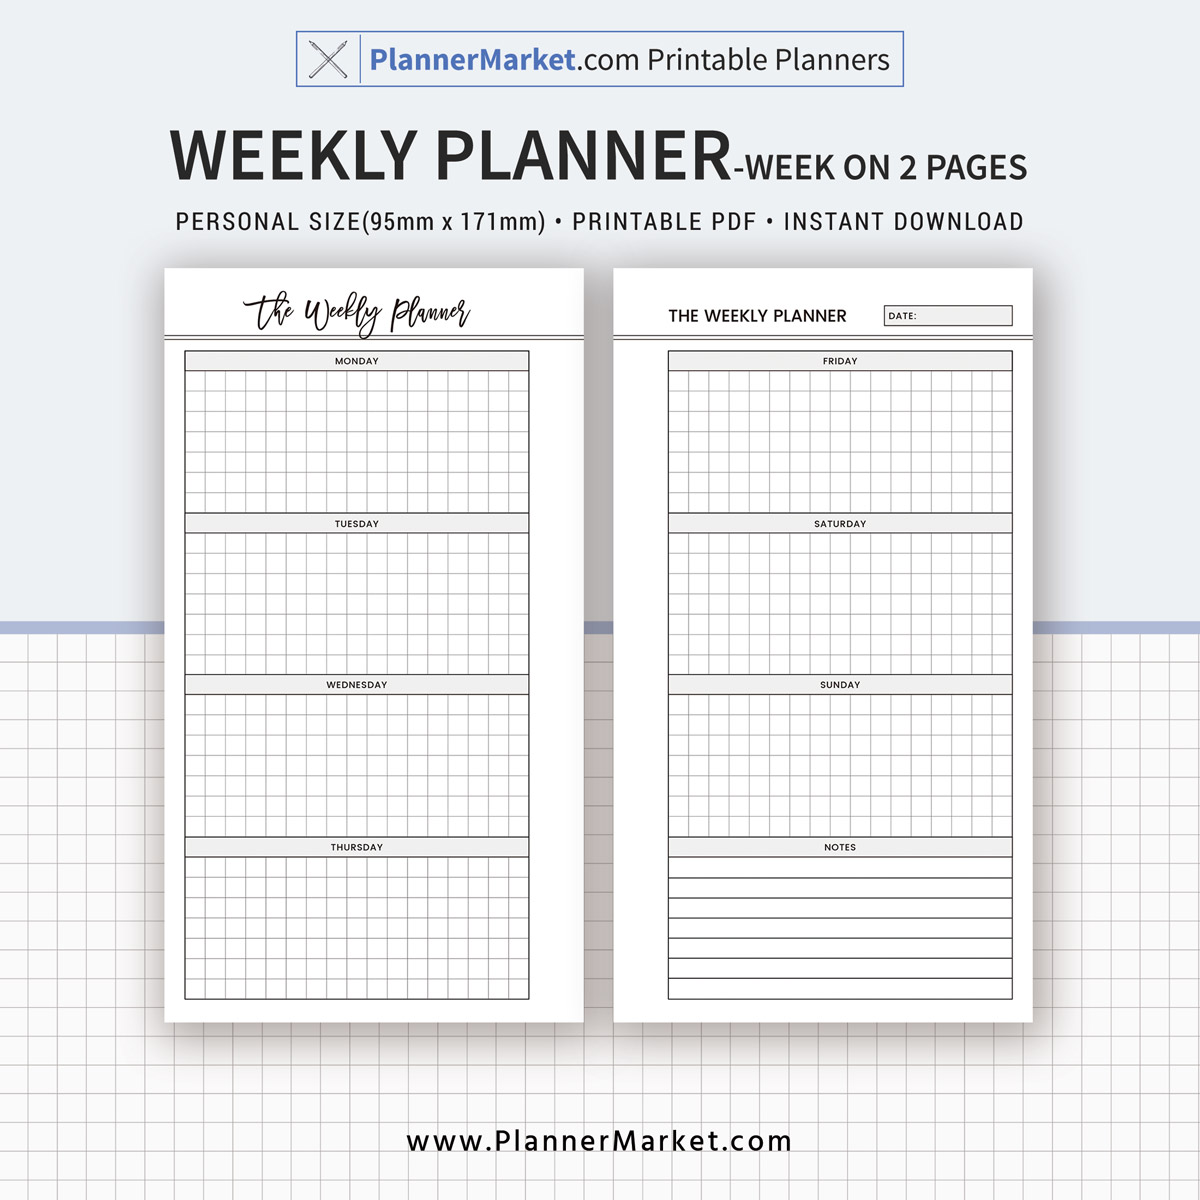 image relating to Free Planner Refills Printable titled 2019 Weekly Planner, 7 days Upon 2 Internet pages, Particular person Dimension Inserts, Planner Refill, Planner Binder, Printable PDF, Quick Obtain